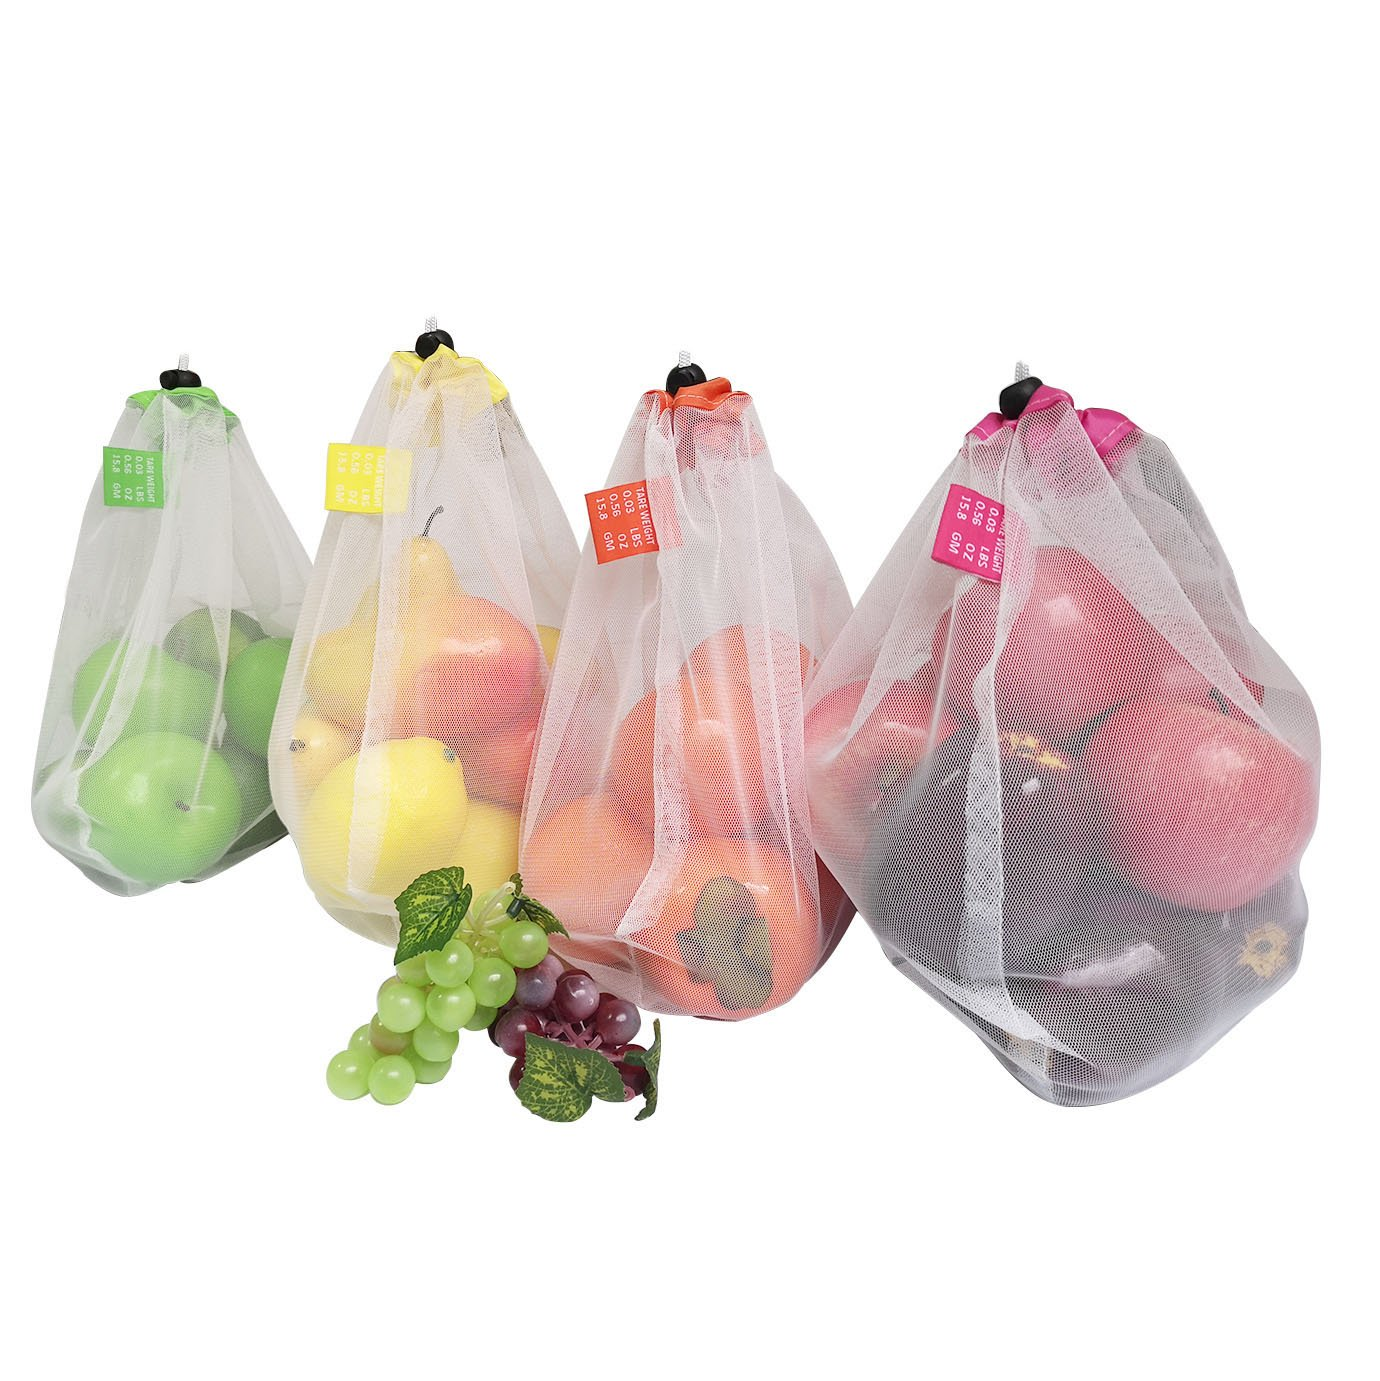 Brotrade Reusable Mesh Produce Bags-Washable Set of 10 Premium Bags Transparent With Tare Weight on Tags for Shopping Storage,Toys Fruit and Vegetable one Size 11'' X 13.5'' by Brotrade (Image #6)